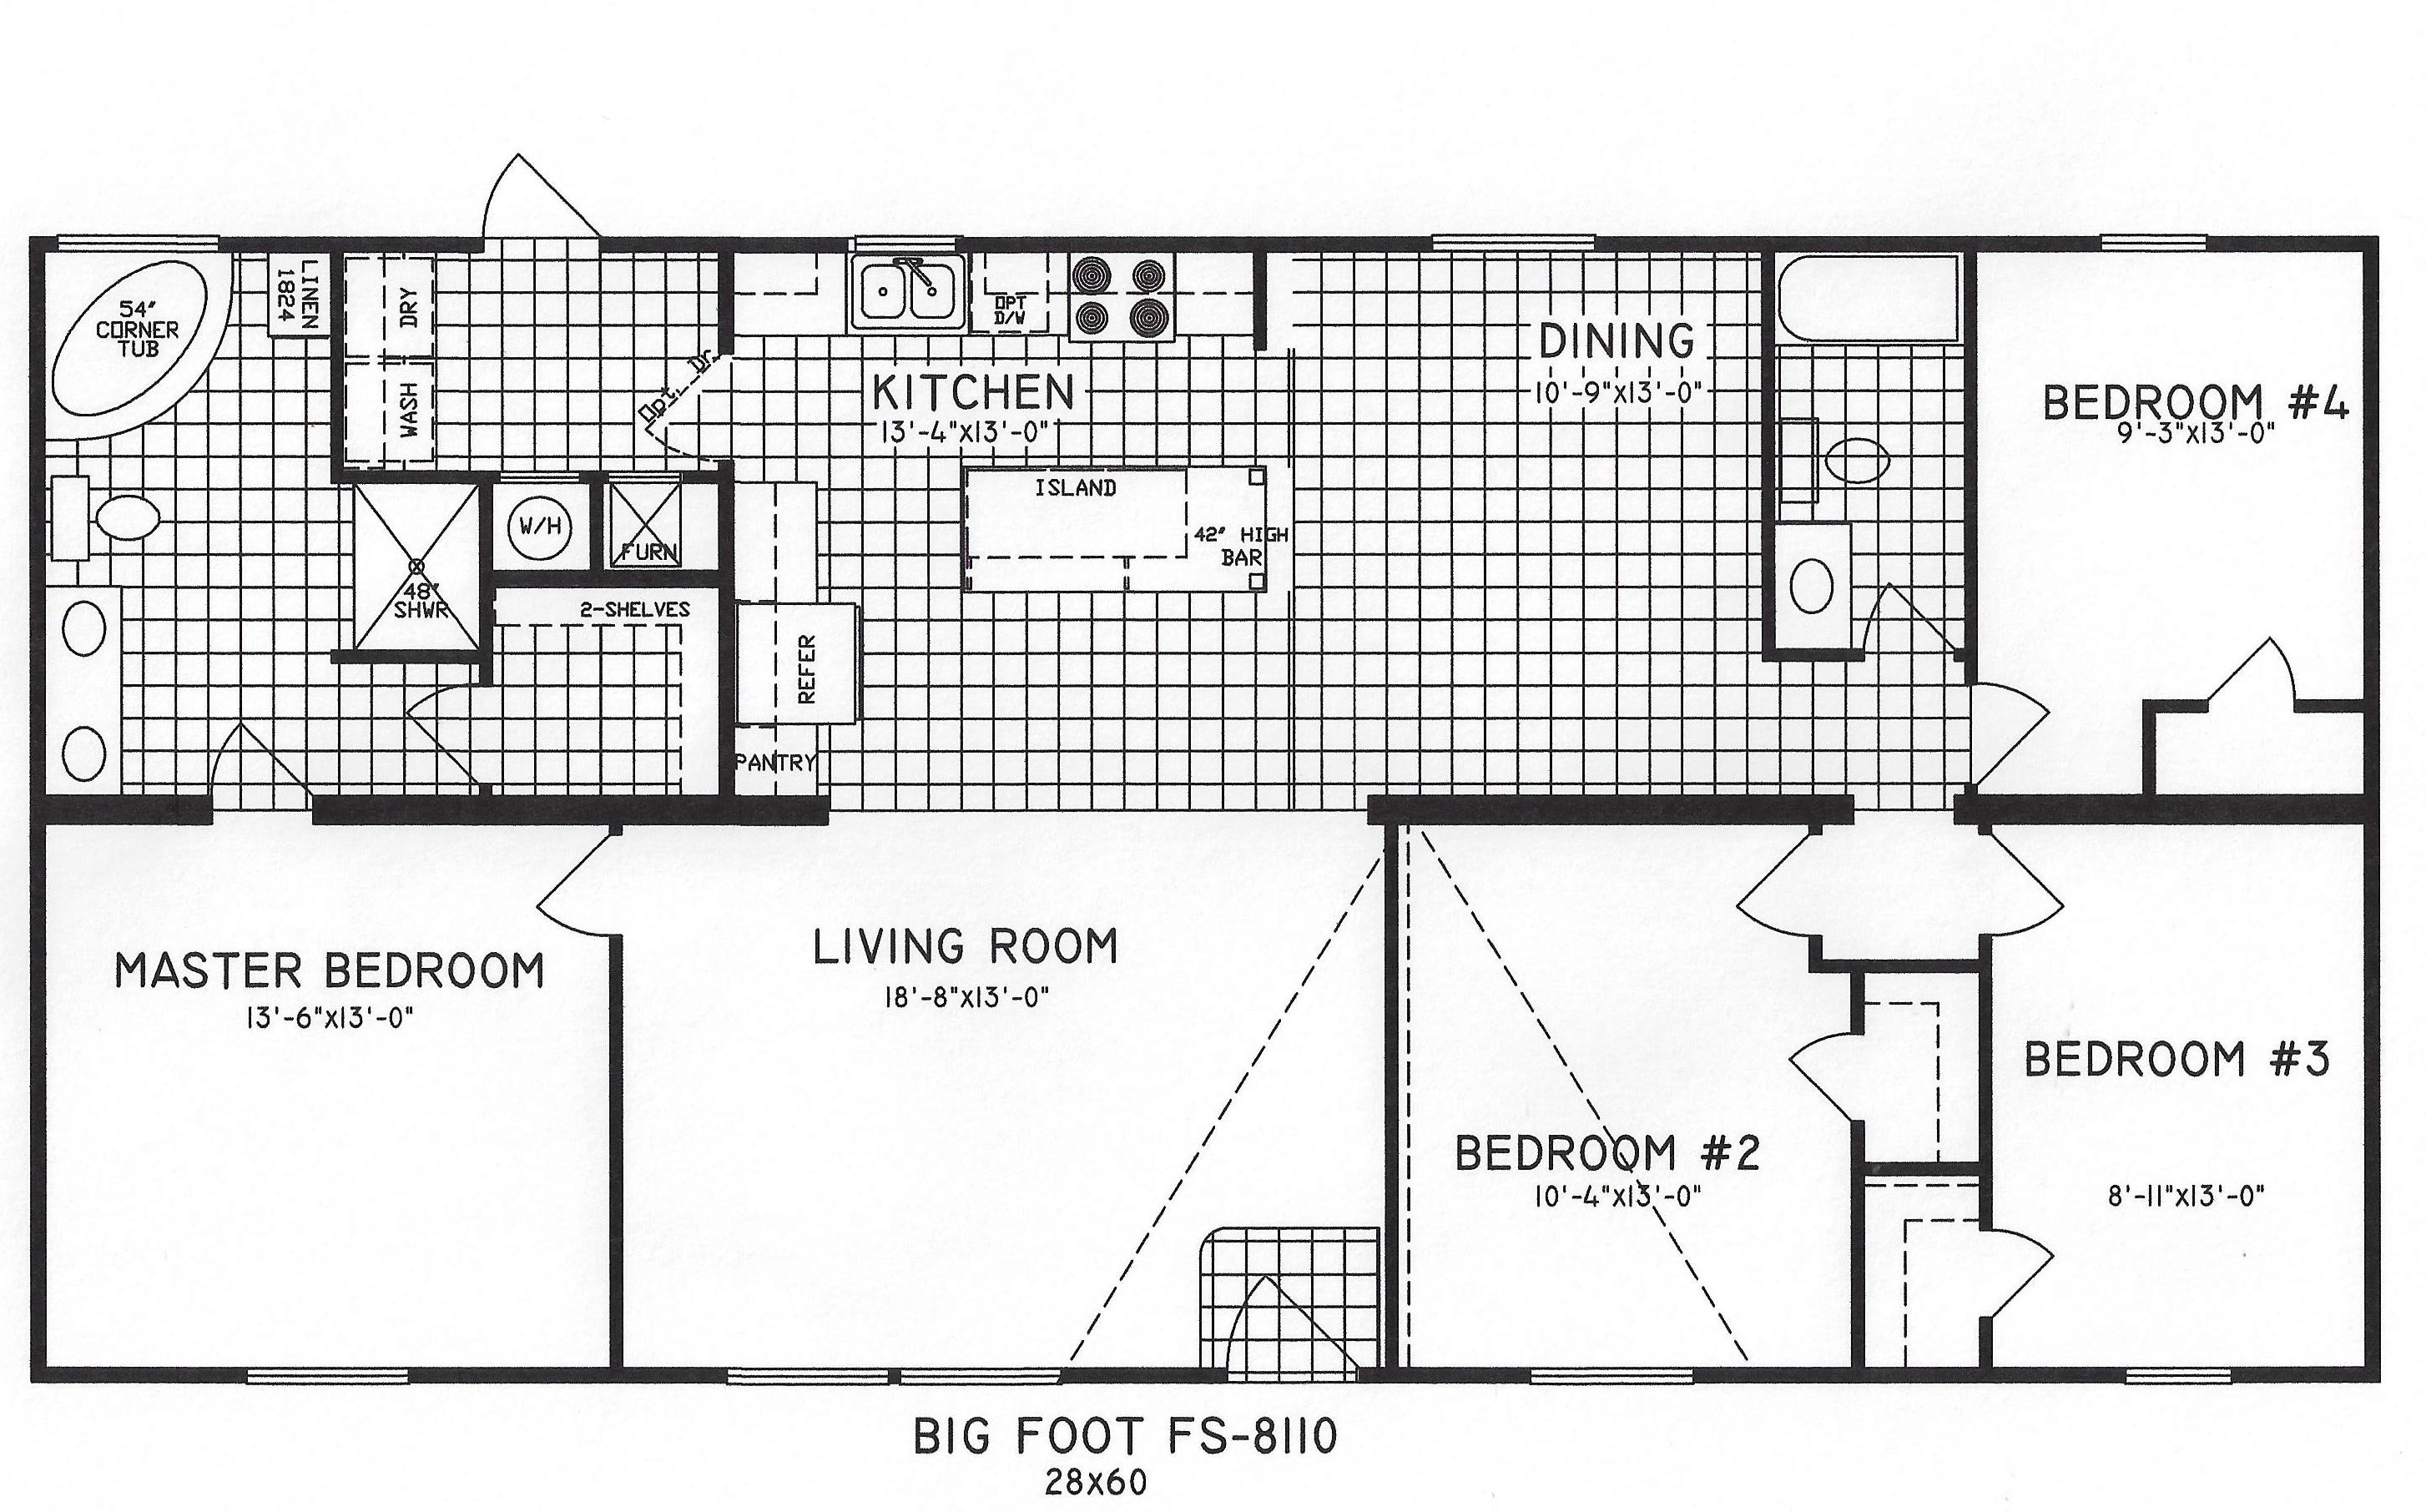 4 Bedroom Floor Plan: C-8110 - Hawks Homes | Manufactured ...